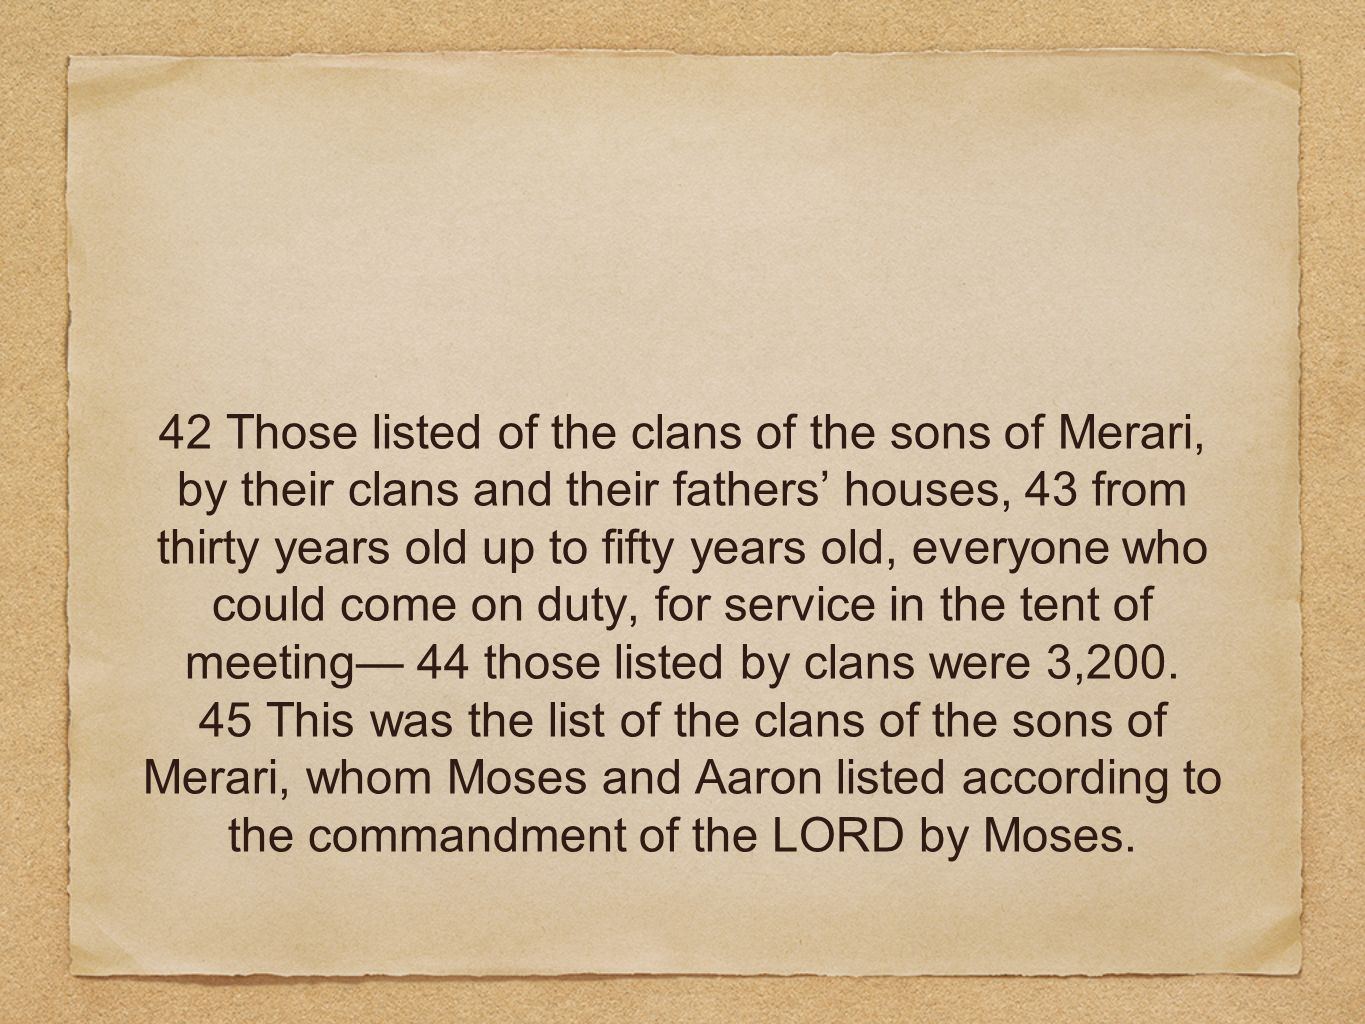 42 Those listed of the clans of the sons of Merari, by their clans and their fathers' houses, 43 from thirty years old up to fifty years old, everyone who could come on duty, for service in the tent of meeting— 44 those listed by clans were 3,200.